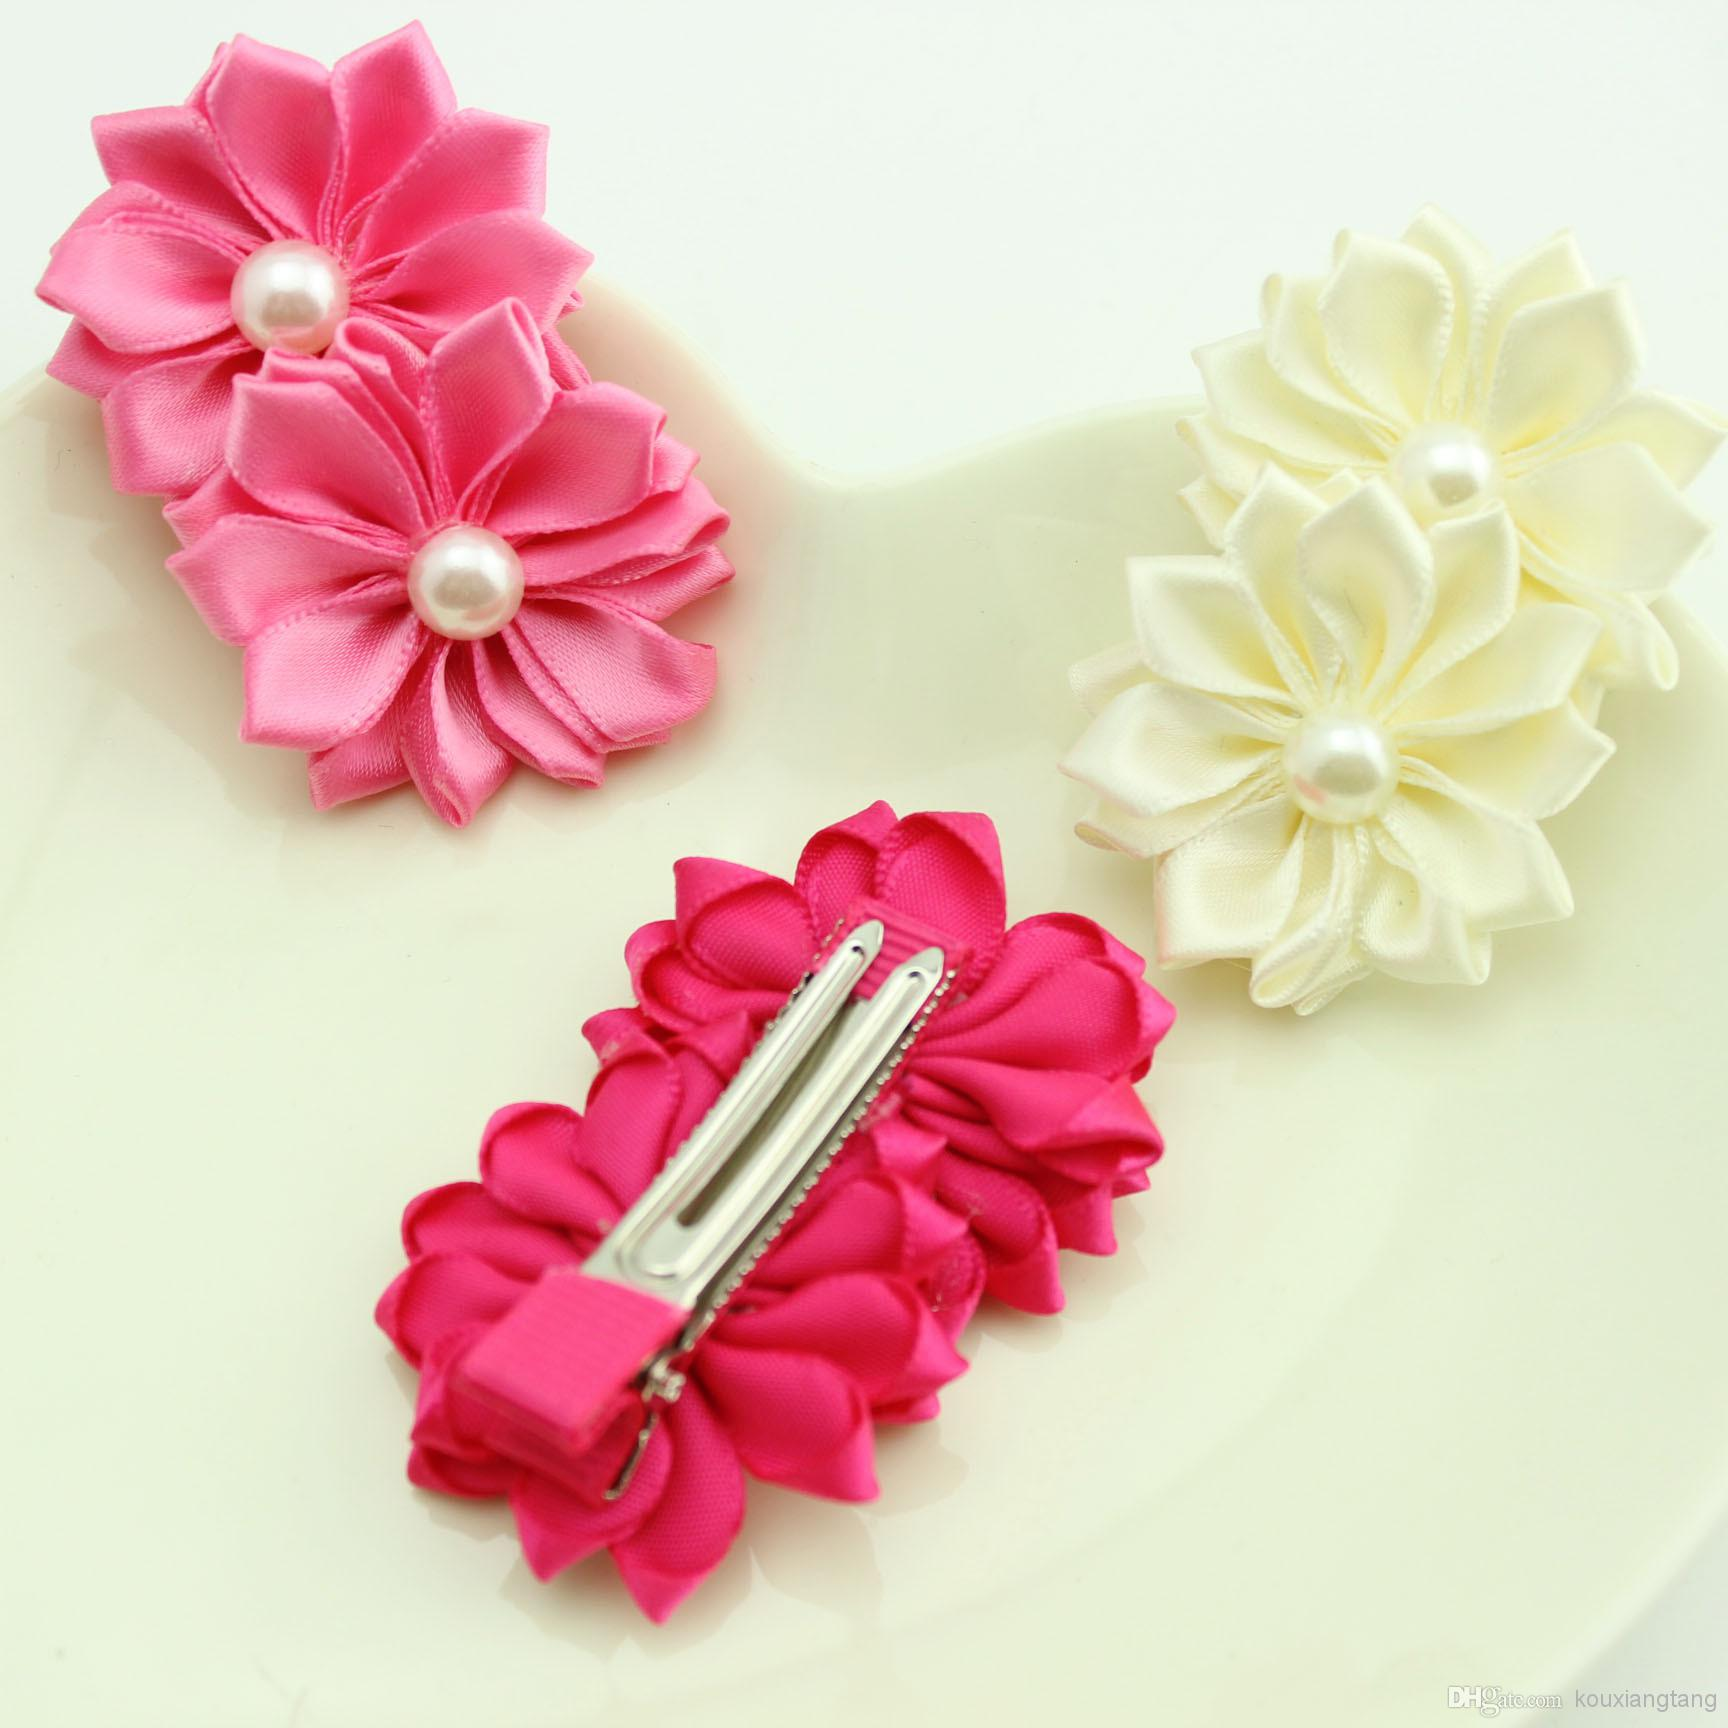 Flower Hair Clip Rose Hairpin Floral Brooch Floral Hair Clips for Women Rose Hair Accessories Wedding Pack 5/ from $ 7 99 Prime. out of 5 stars 8. Myamy. 3 in in 6in Hair Bows For Girls Grosgrain Ribbon Large Butique Bow Clip Teens Toddlers Kids Children. from $ 8 69 Prime.